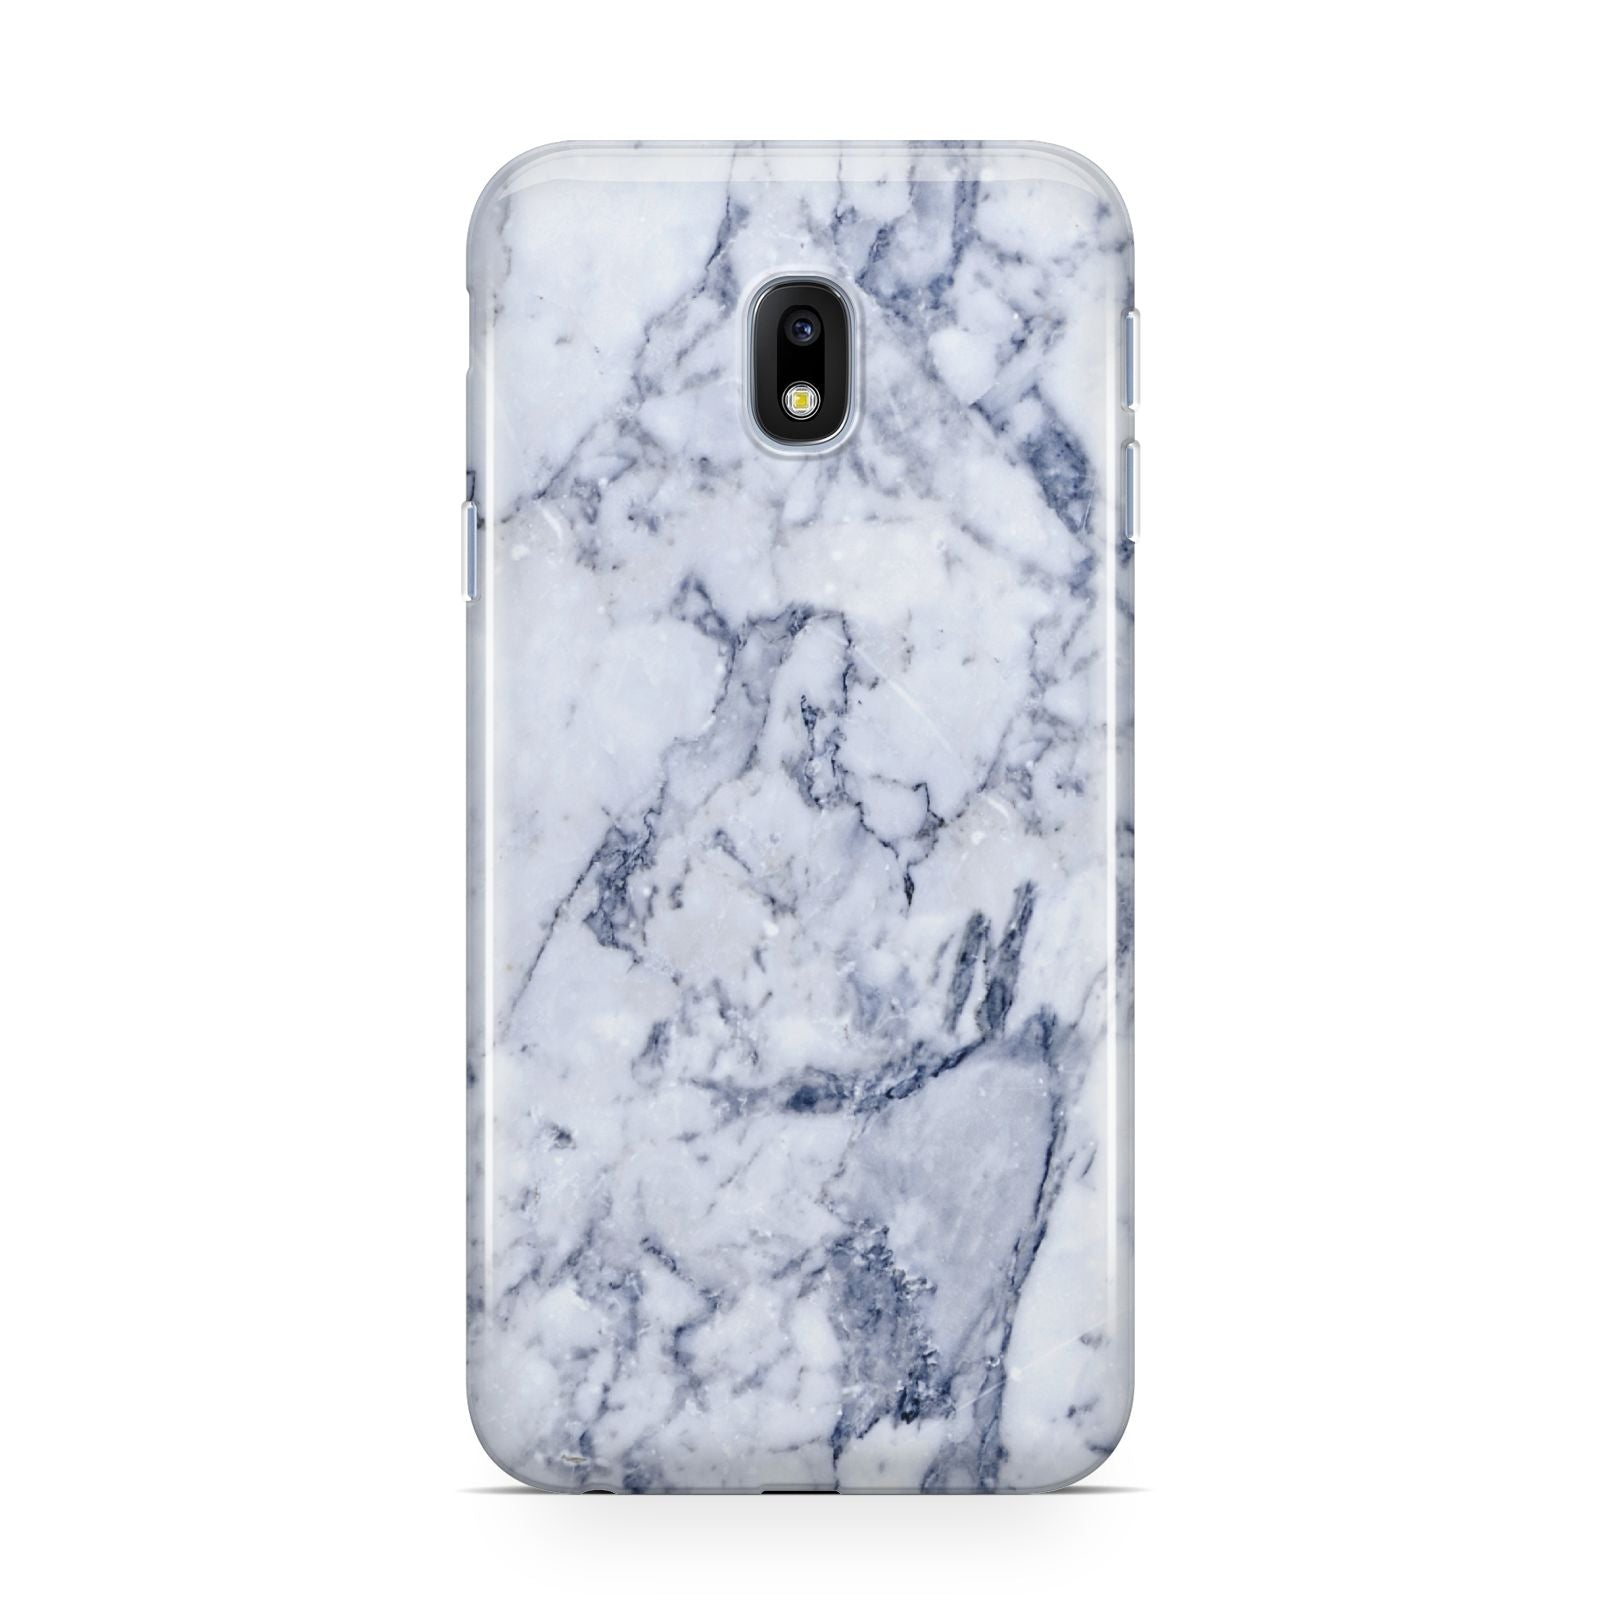 Faux Marble Blue Grey White Samsung Galaxy J3 2017 Case